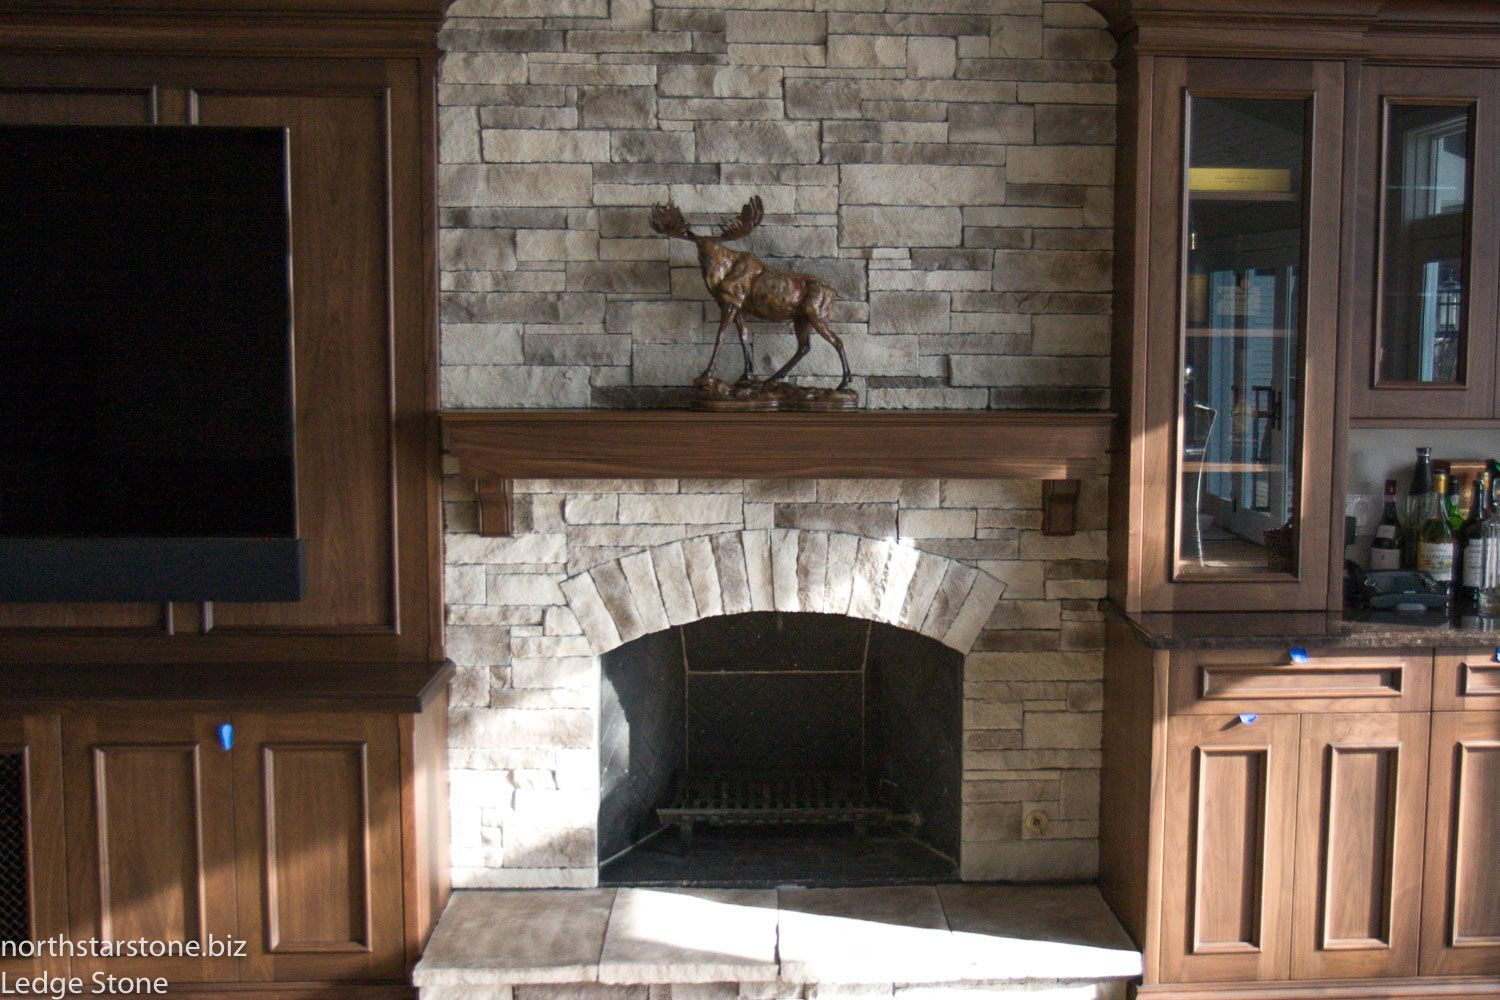 This Fireplace In Ledge Stone With A Smokey Brown Mist